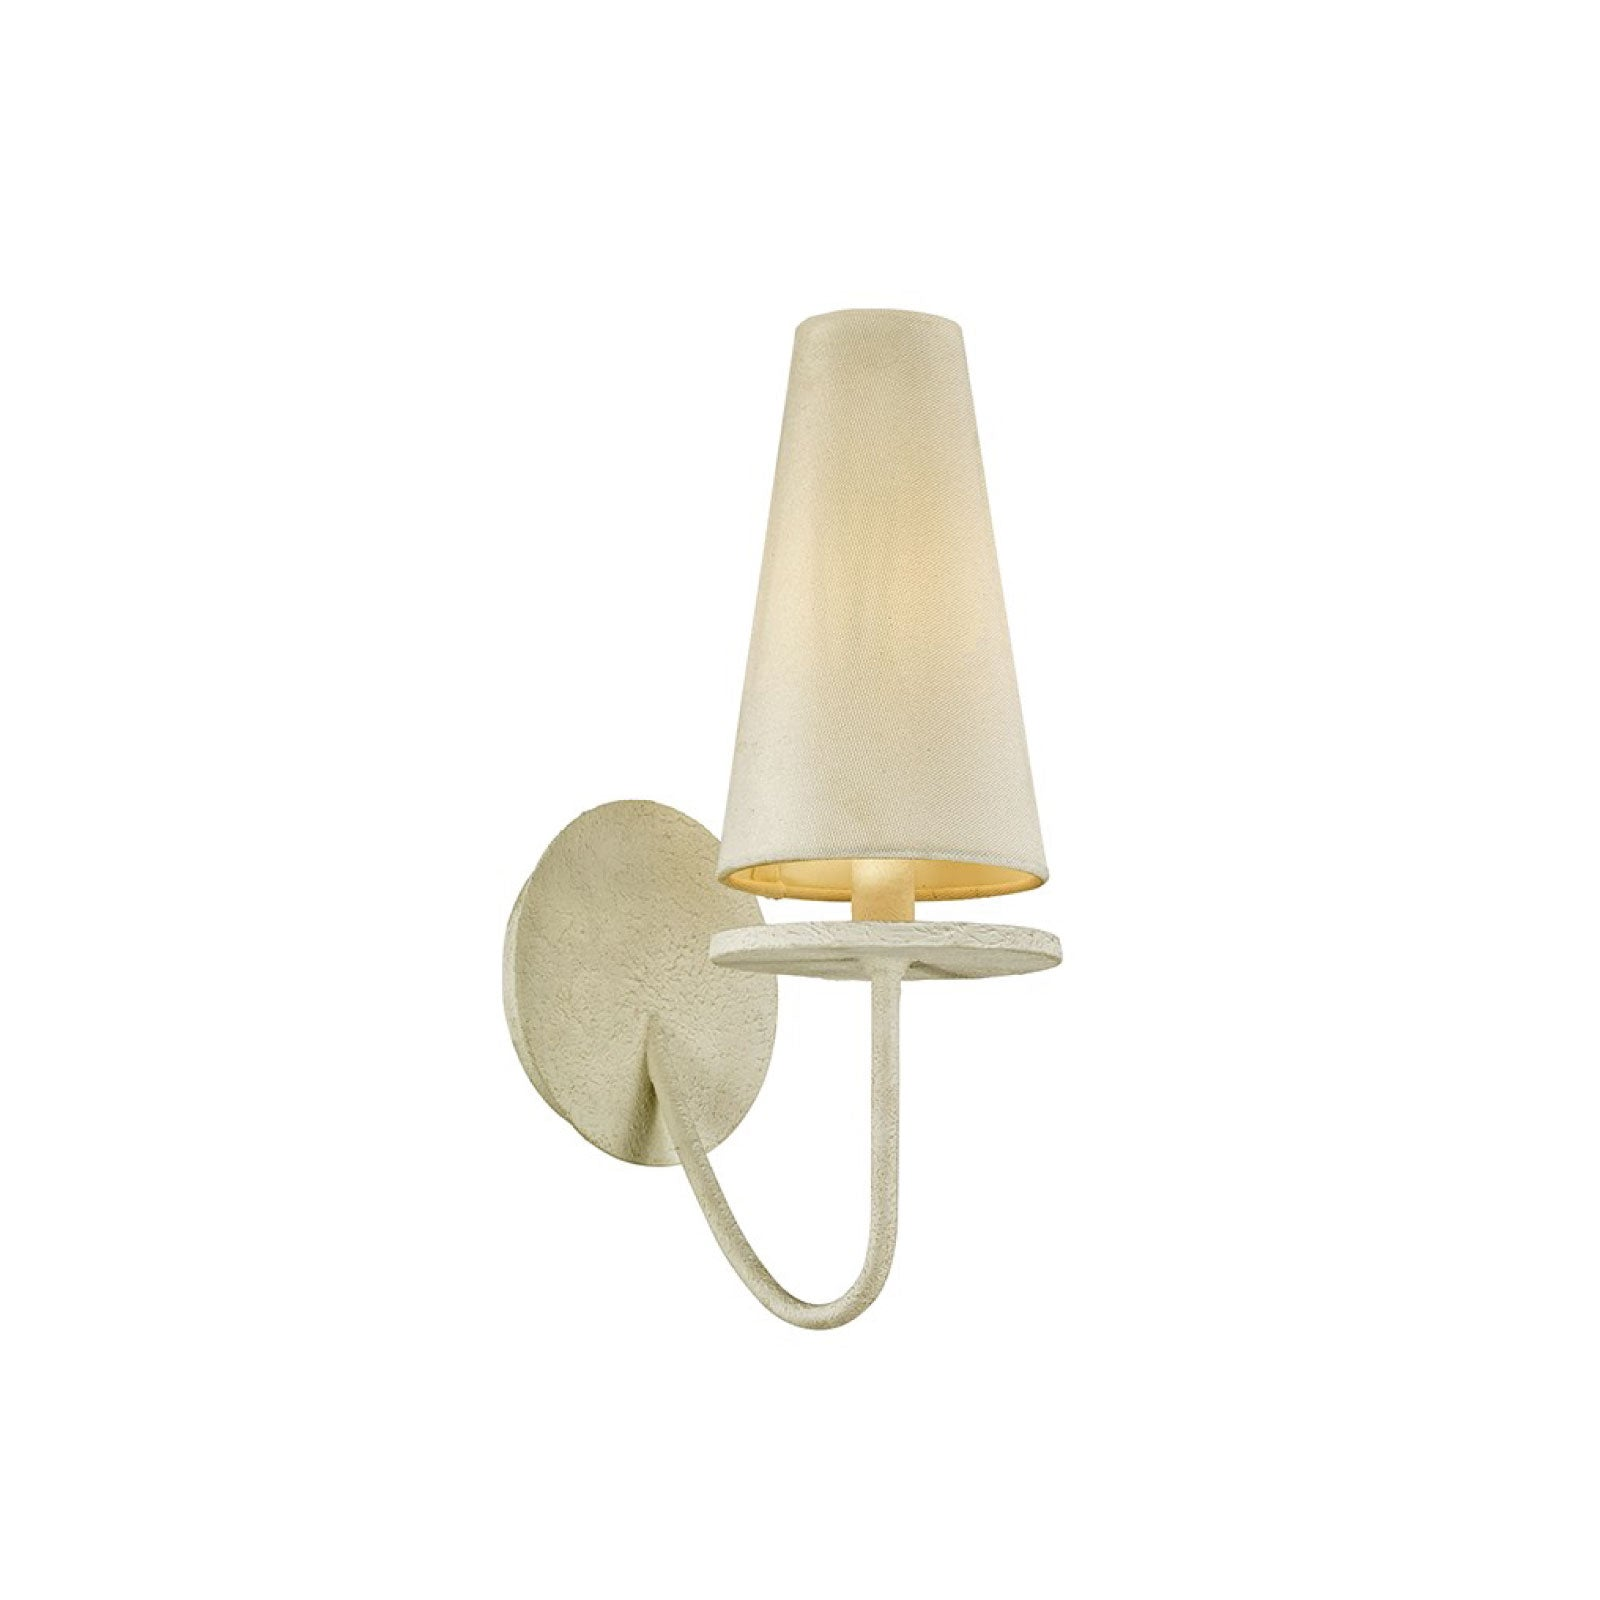 Rosecliff Sconce in Cream